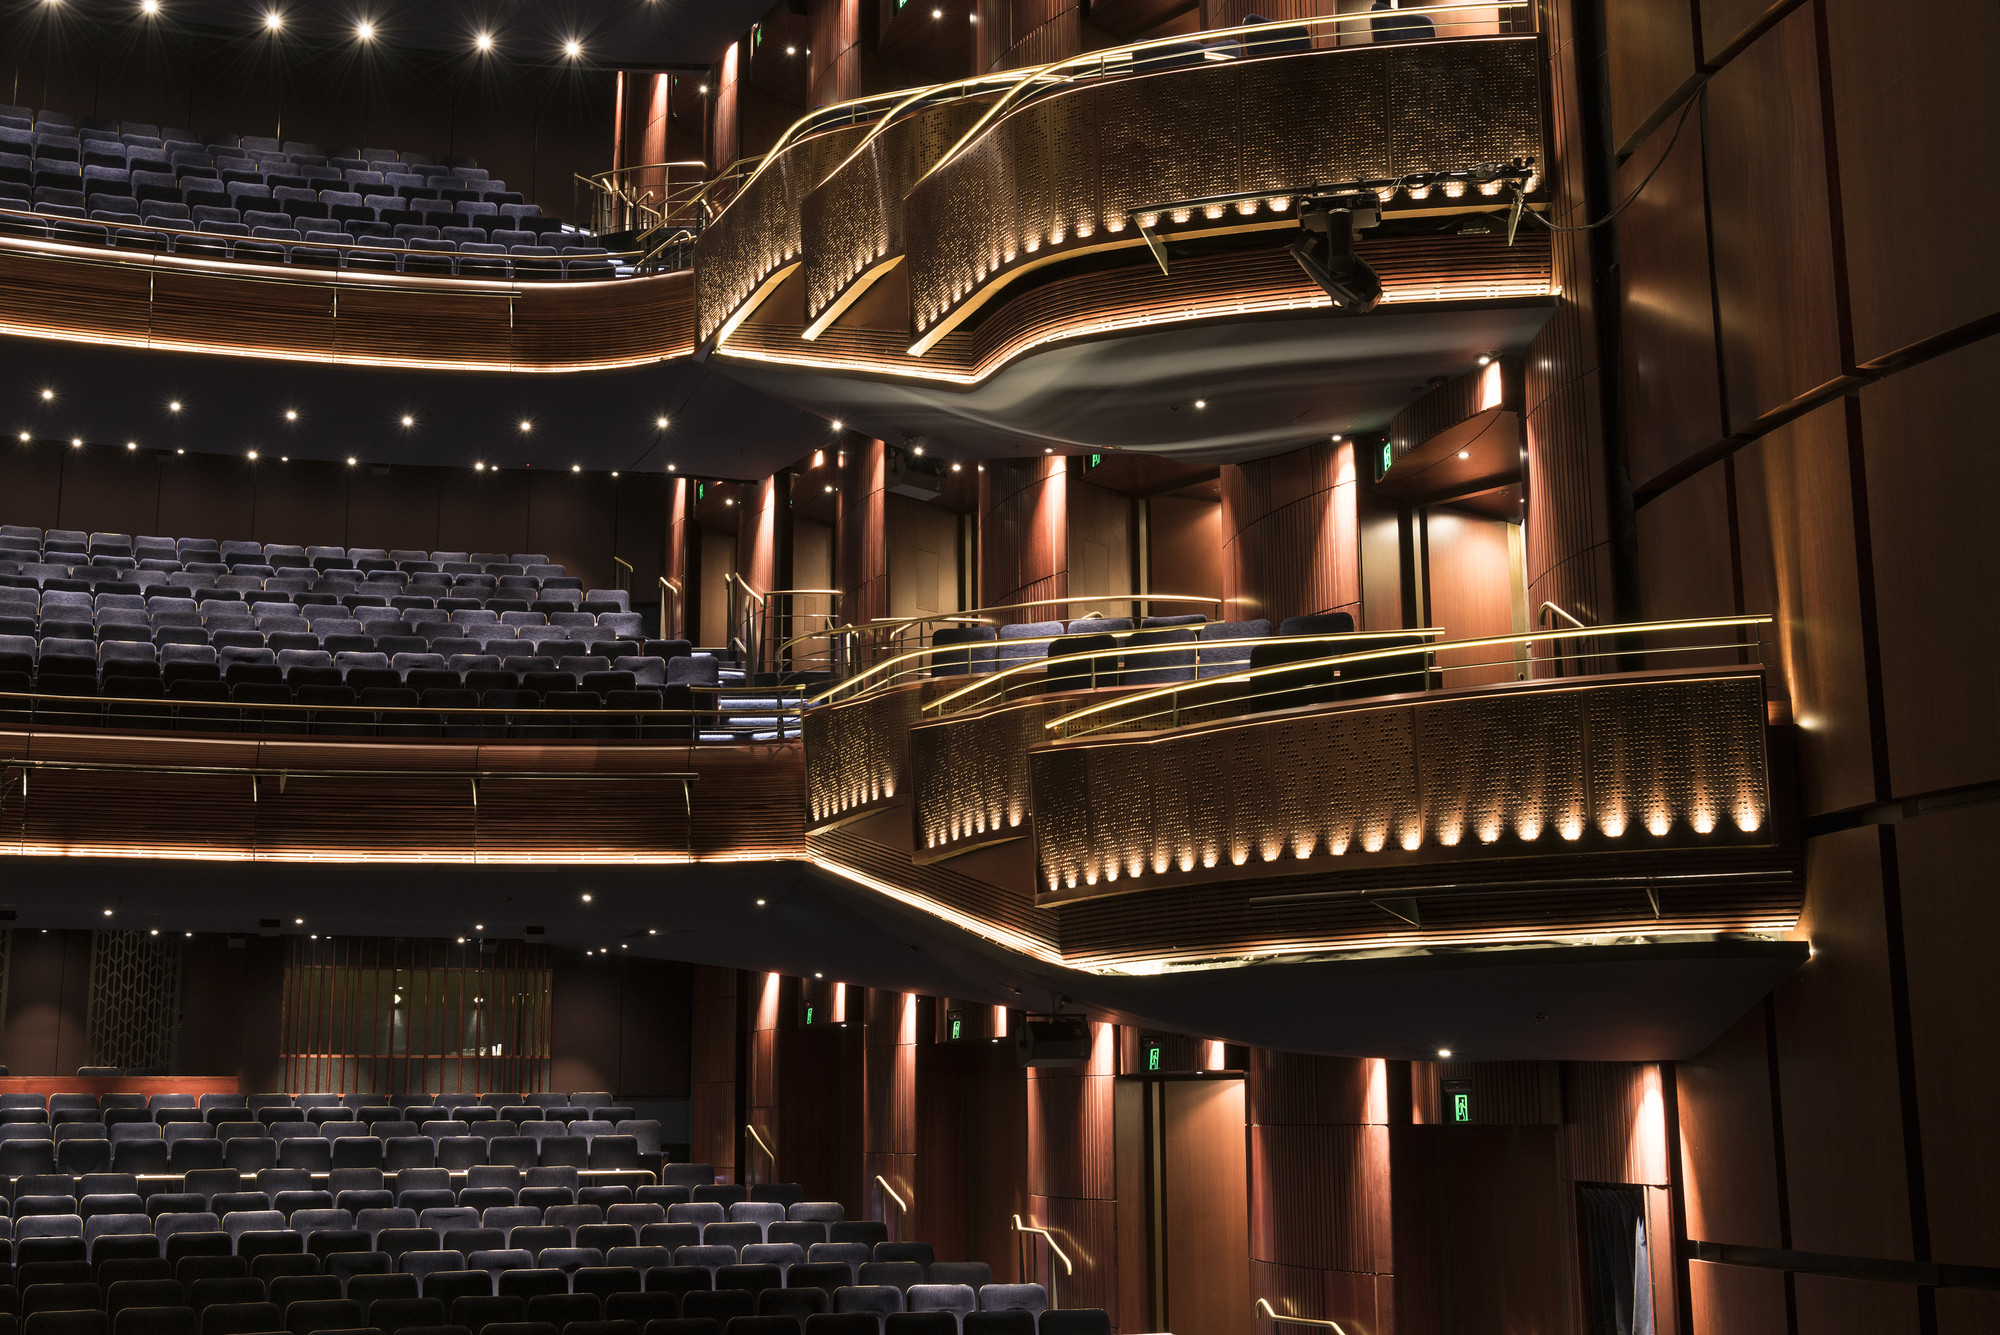 The Sydney Lyric Theatre